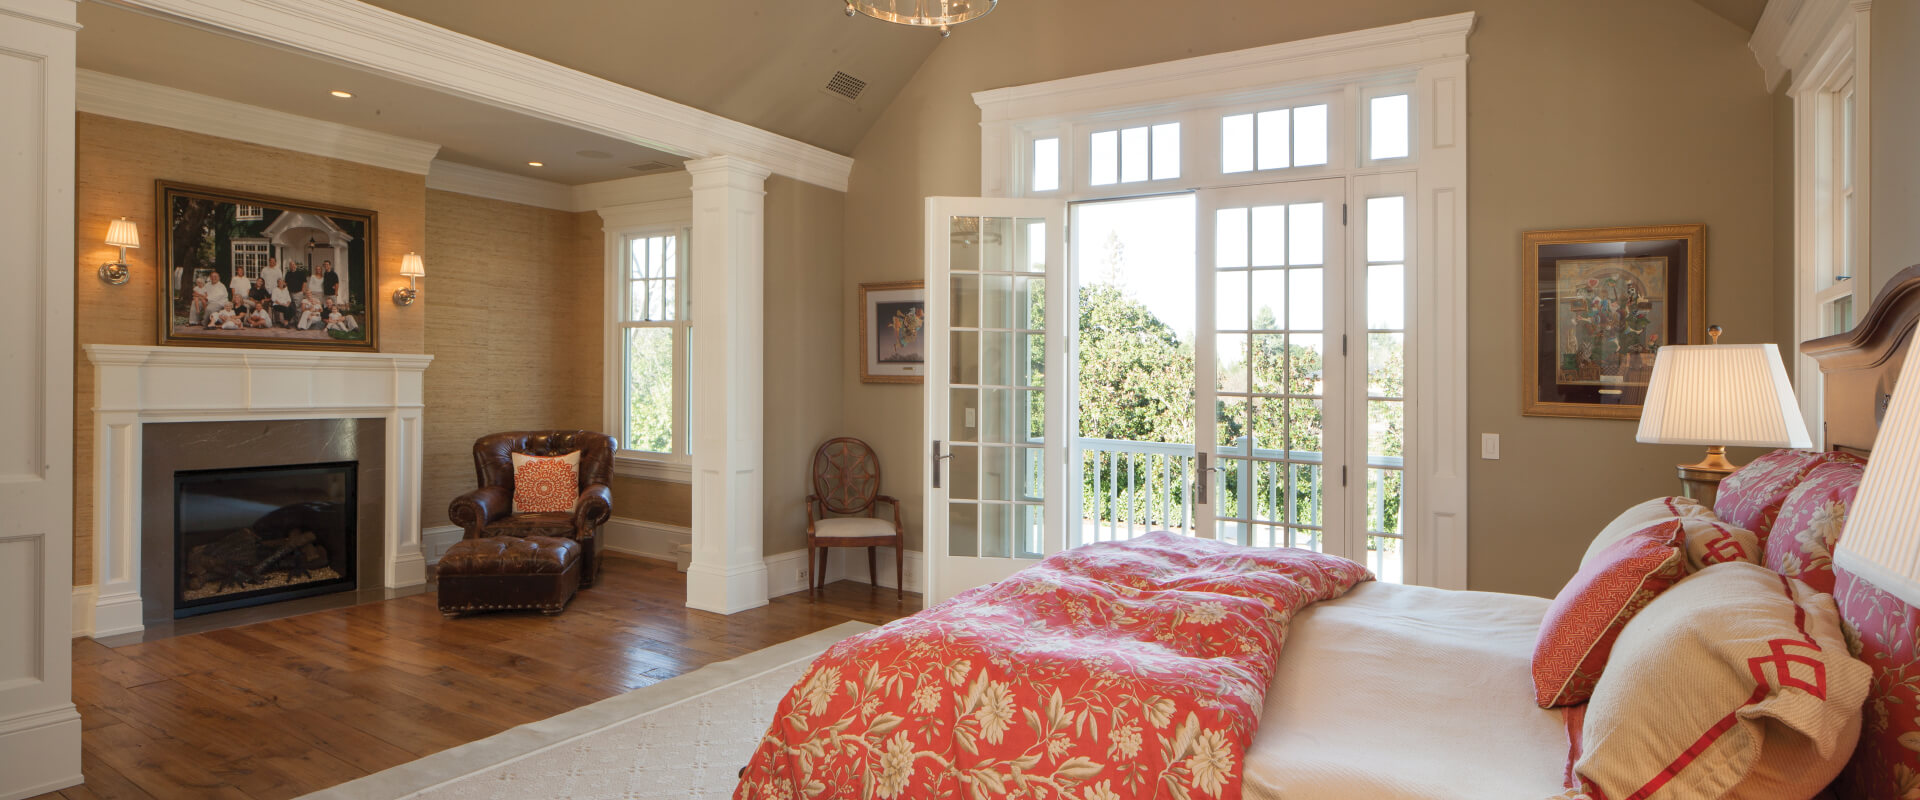 Heritage Swinging Patio Doors Interior